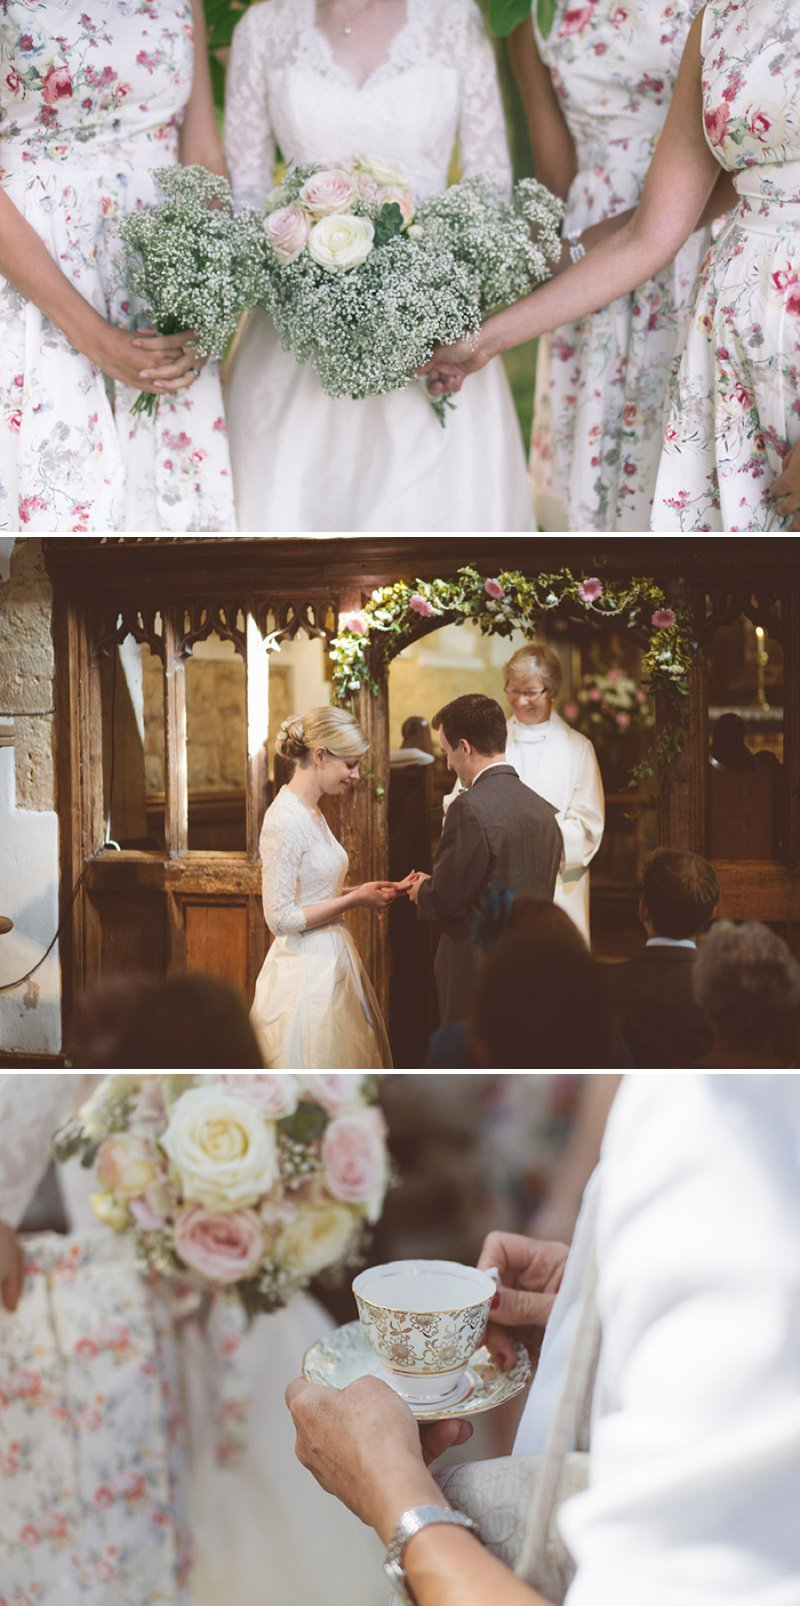 Rustic Wedding At Creslow Manor With Bride In Lace Paloma Blanca Gown With Groom In Morning Dress And Bridesmaids In Floral Print Dresses And Roses And Gypsophila In Bouquets Images By Joseph Hall 1